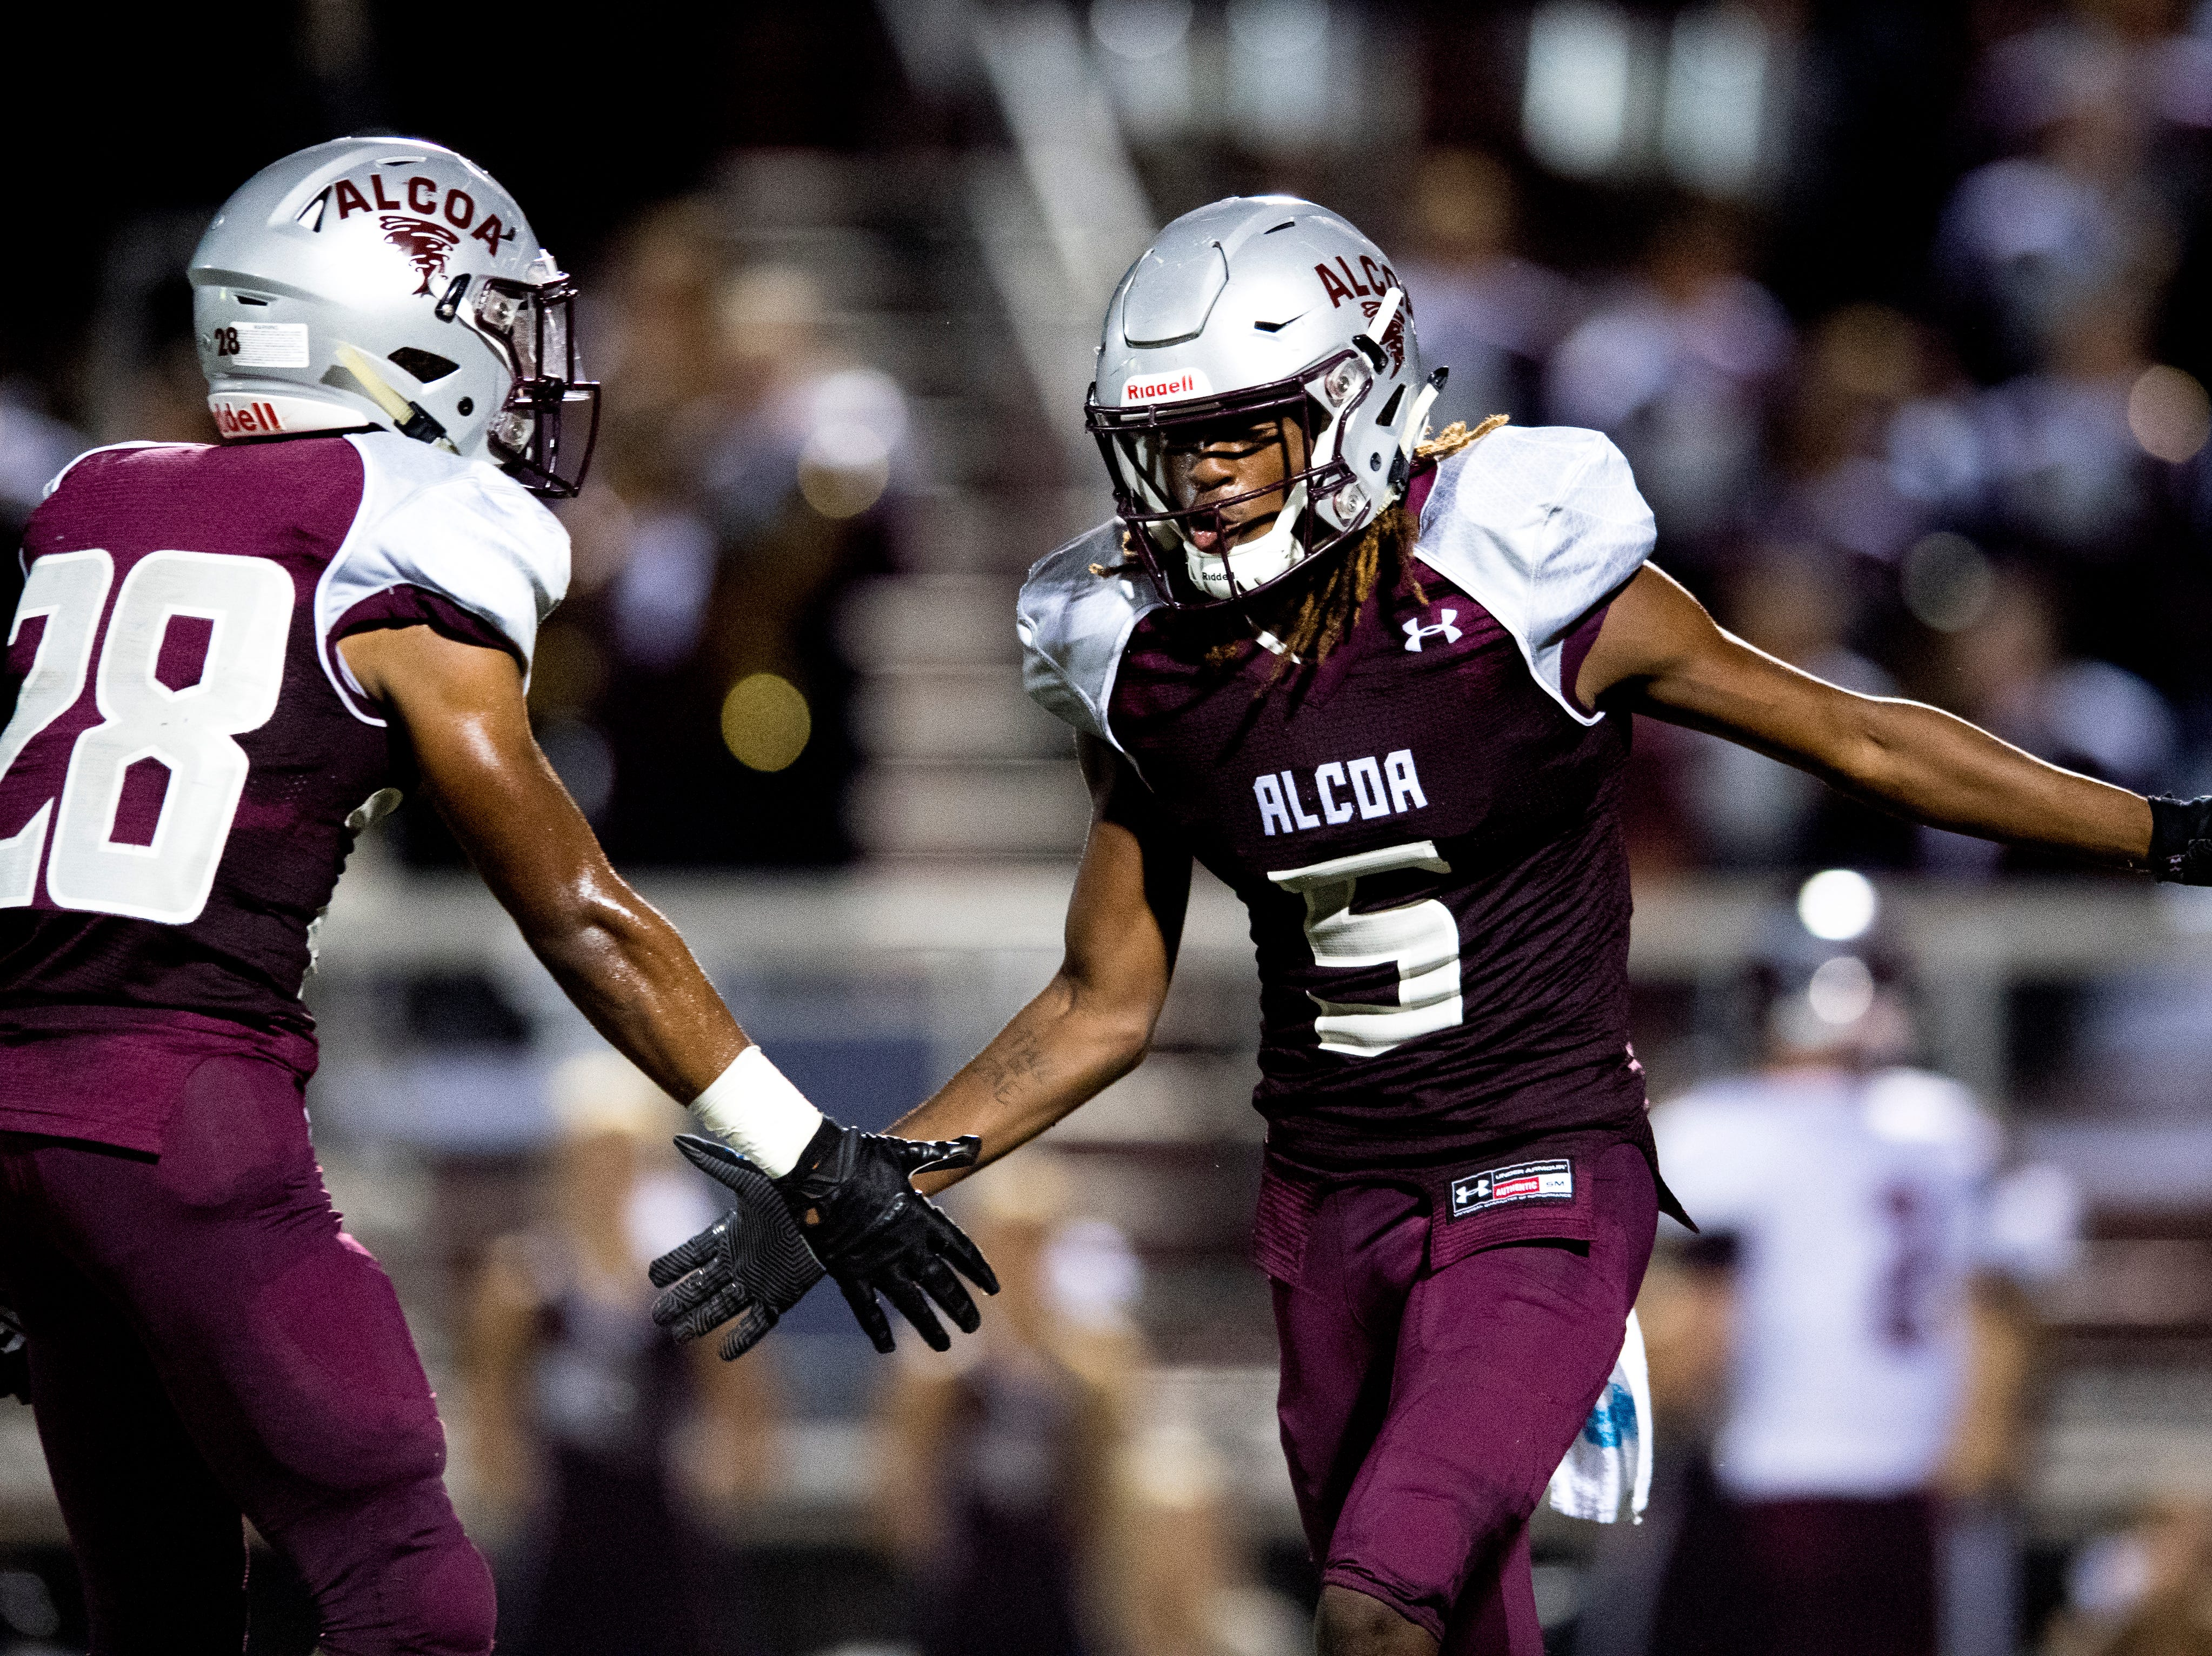 Alcoa's C.J. Armstrong (5) is congratulated by Alcoa's J.R. Jones (28) on a run during a game between Alcoa and Dobyns-Bennett at Alcoa High School in Alcoa, Tennessee on Friday, September 21, 2018.